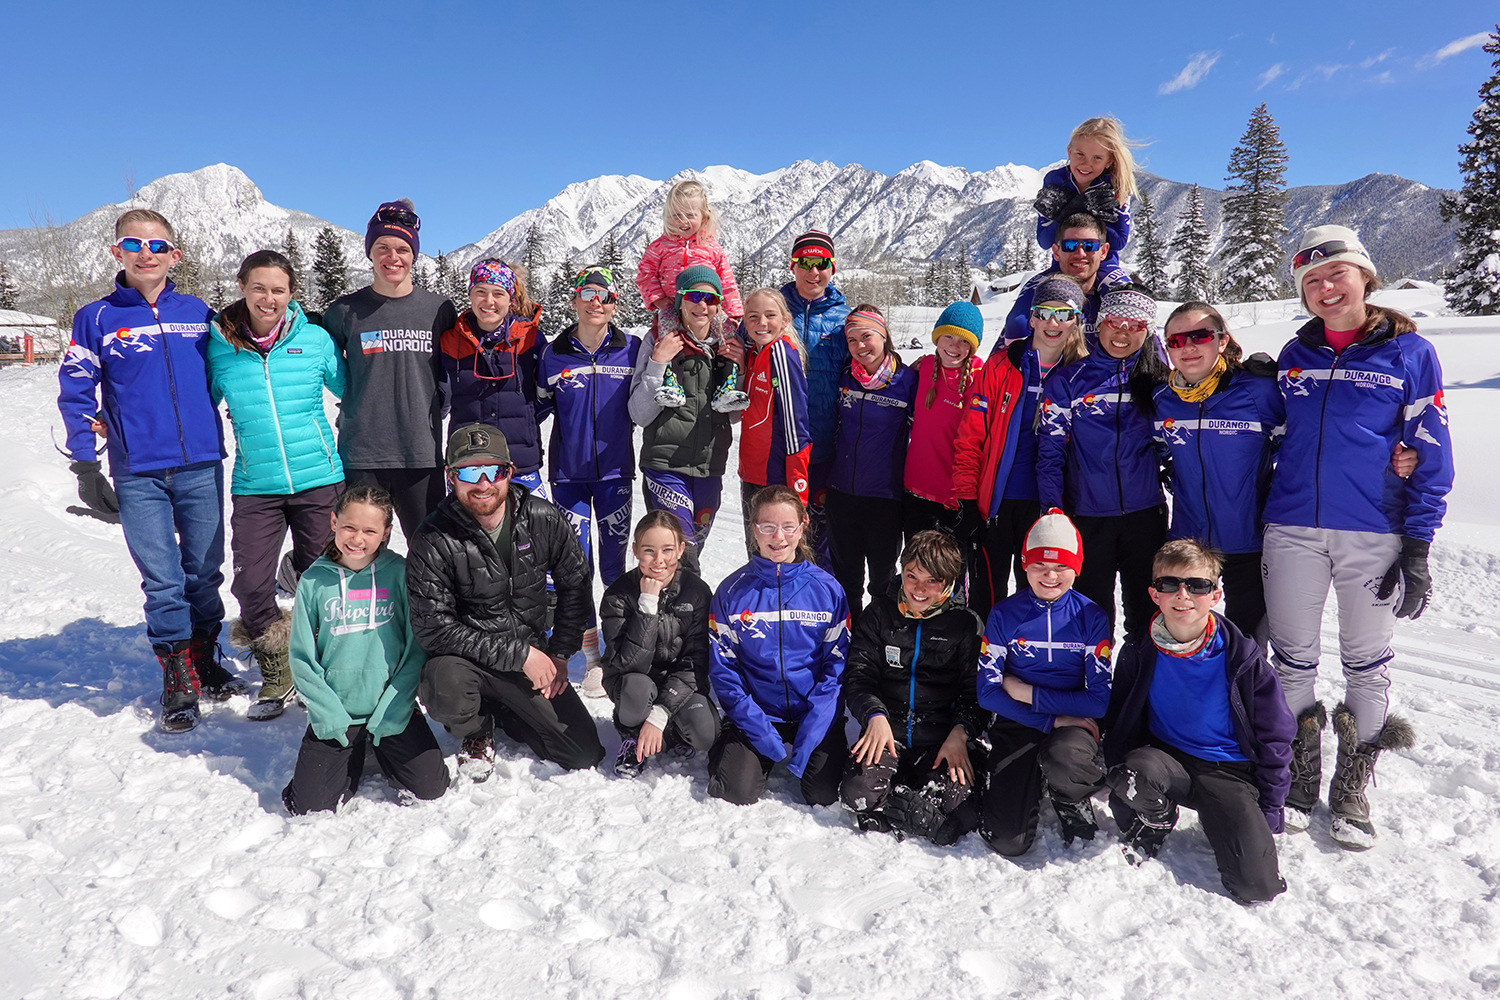 our programs - We offer programs for children and adults of all ability levels. Whether you're seeking winter fitness, competition, or just want to ski with friends and enjoy nature, we have a program for you!